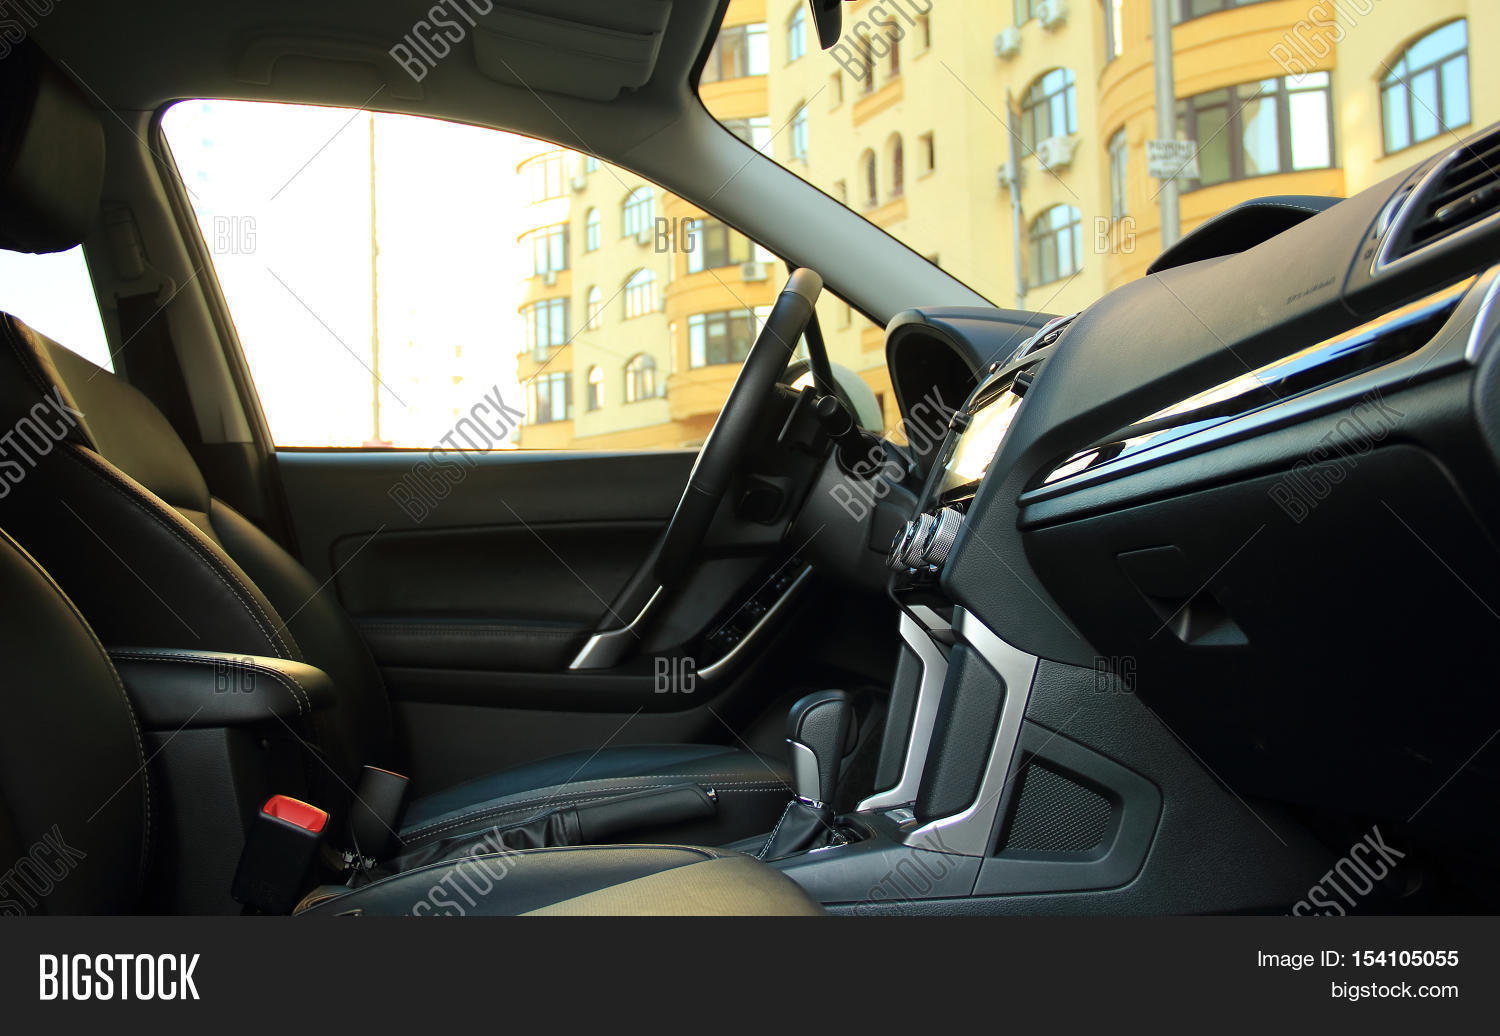 car interior automatic gearbox side image photo bigstock. Black Bedroom Furniture Sets. Home Design Ideas